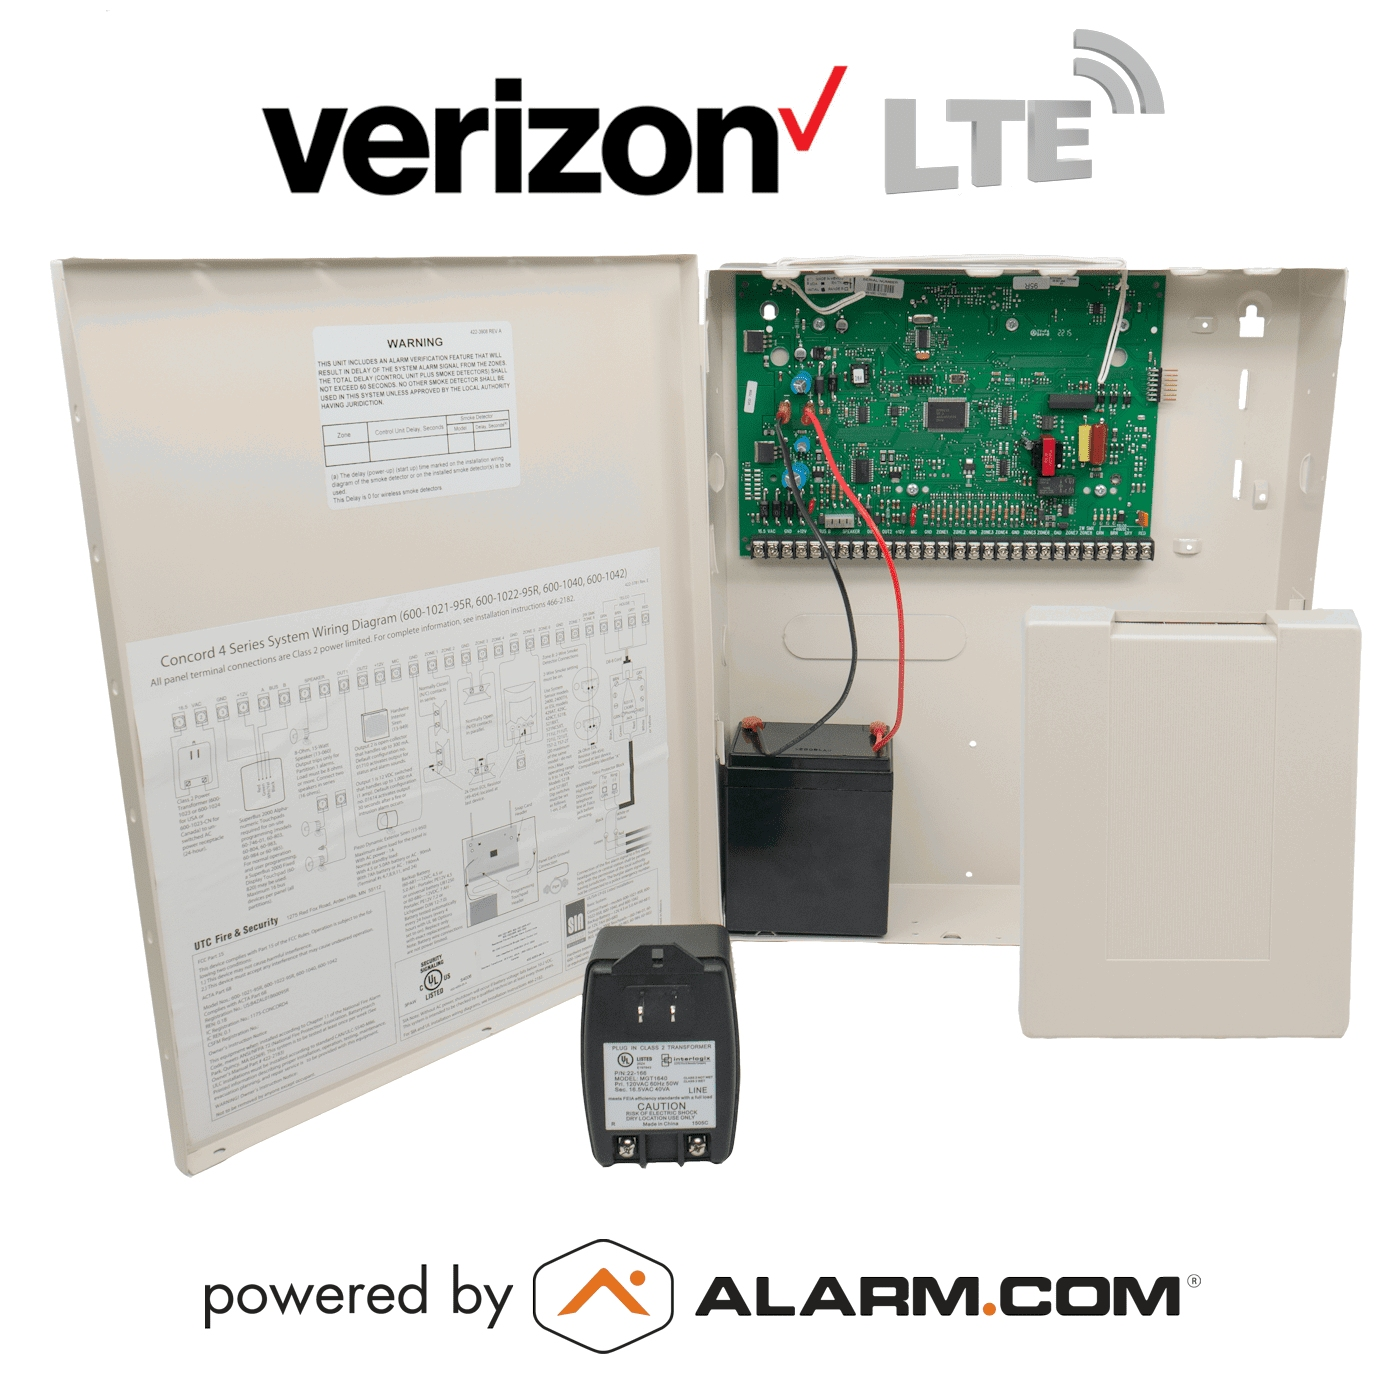 Fire Alarm Home Security Systems Wiring Harness Diagram ... on